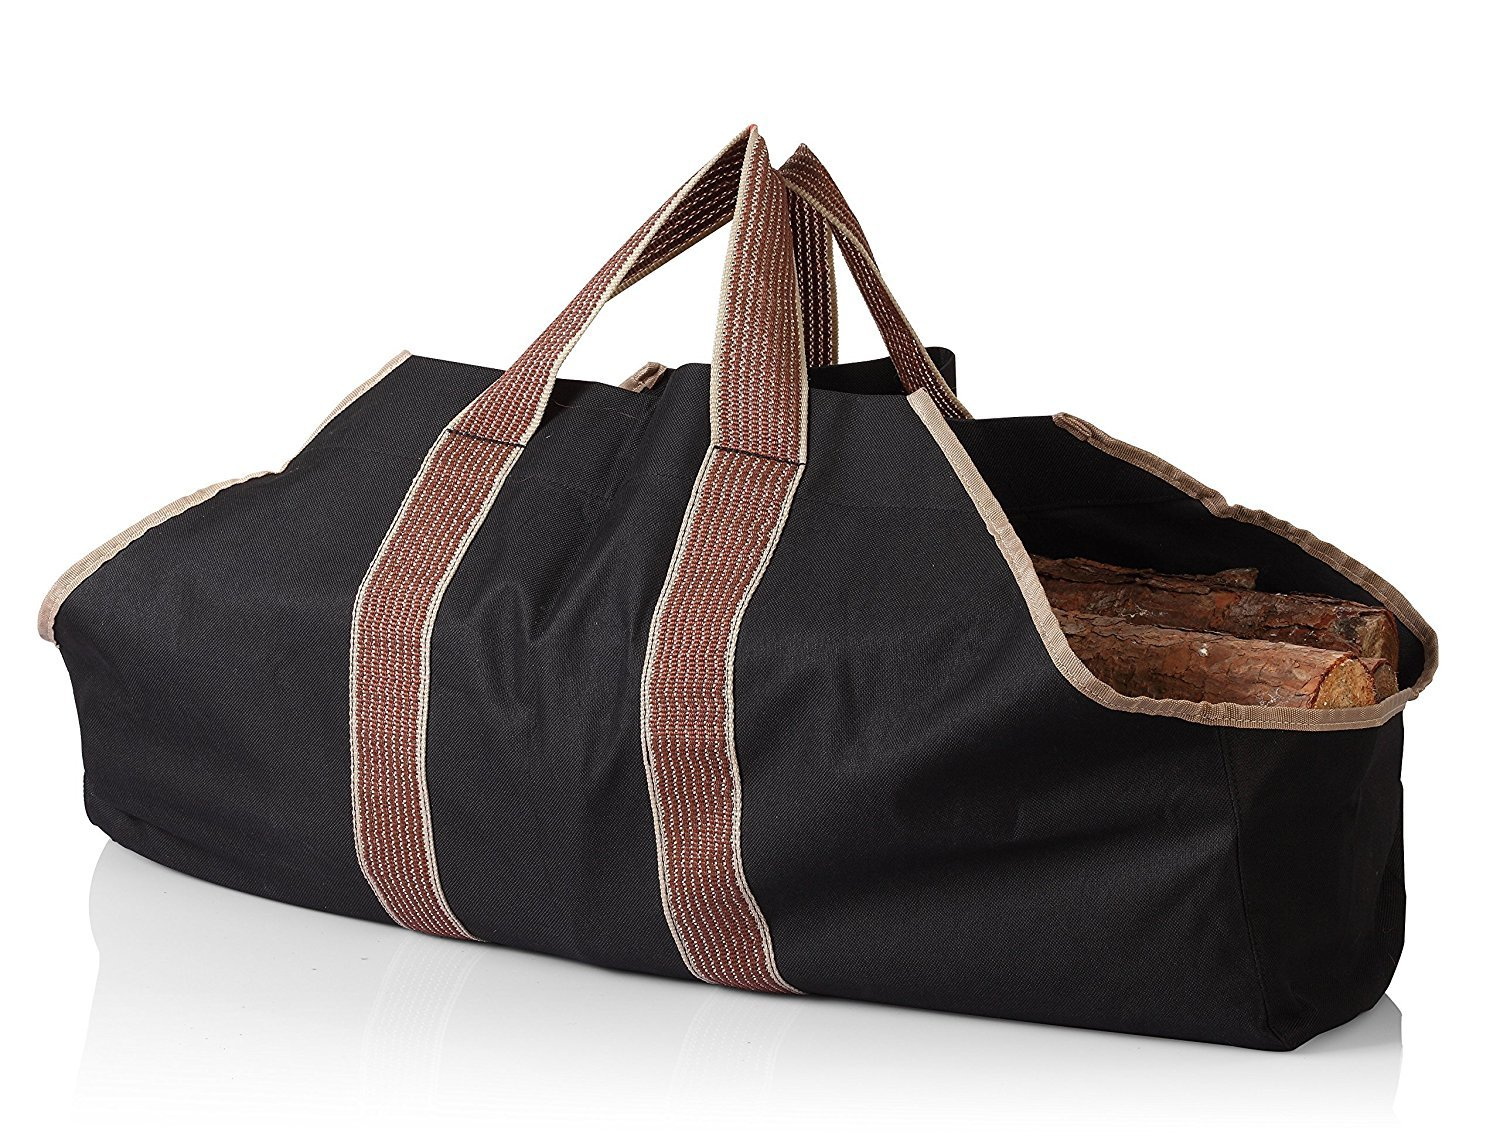 NDCAN Log Carrier Firewood Tote Wood Carrying Bag for Fireplace by NDCAN